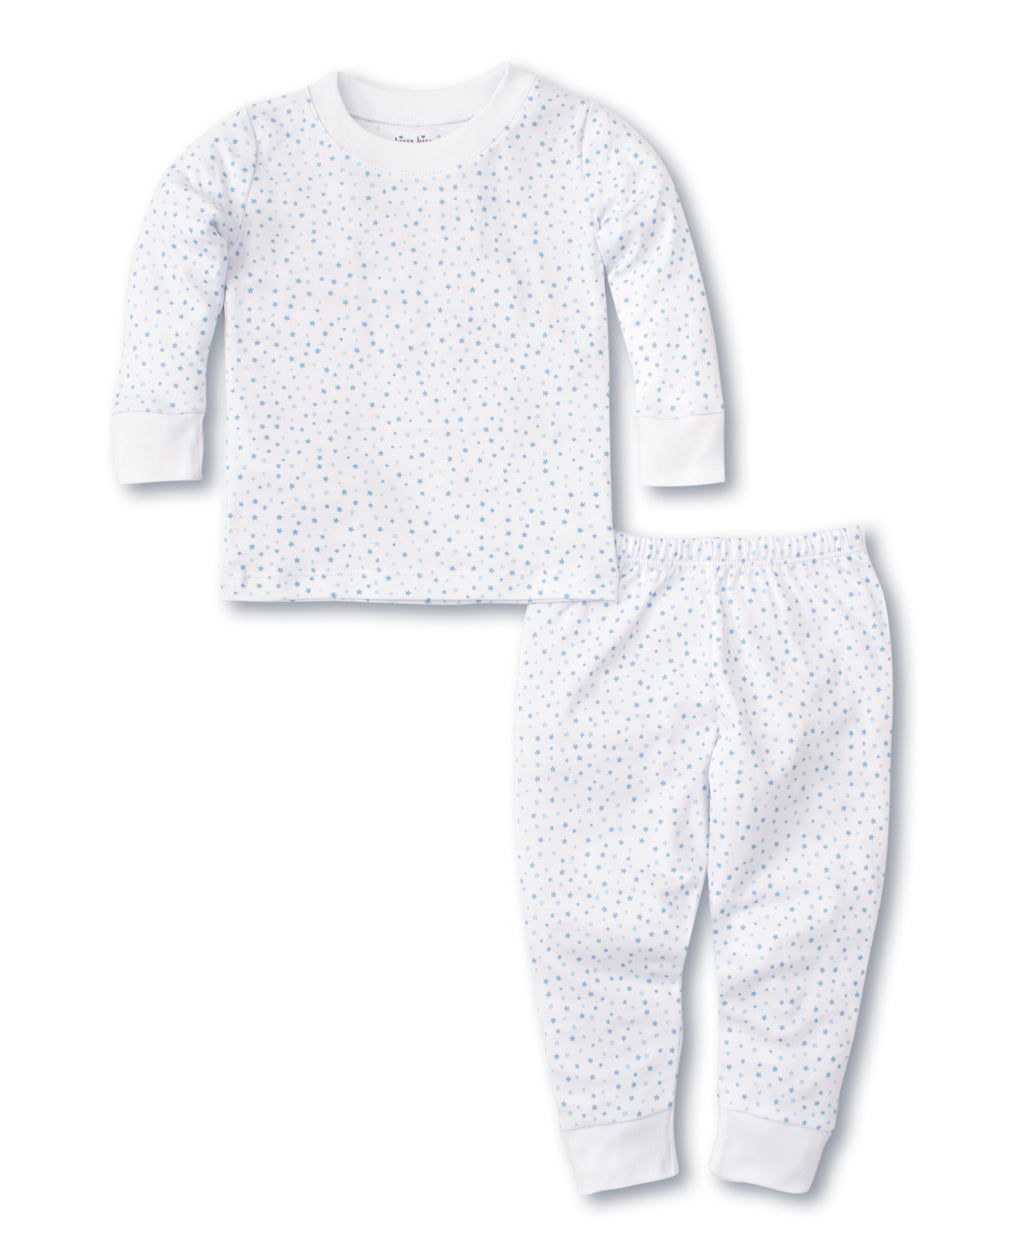 Kissy Superstars White Toddler Pajama Set